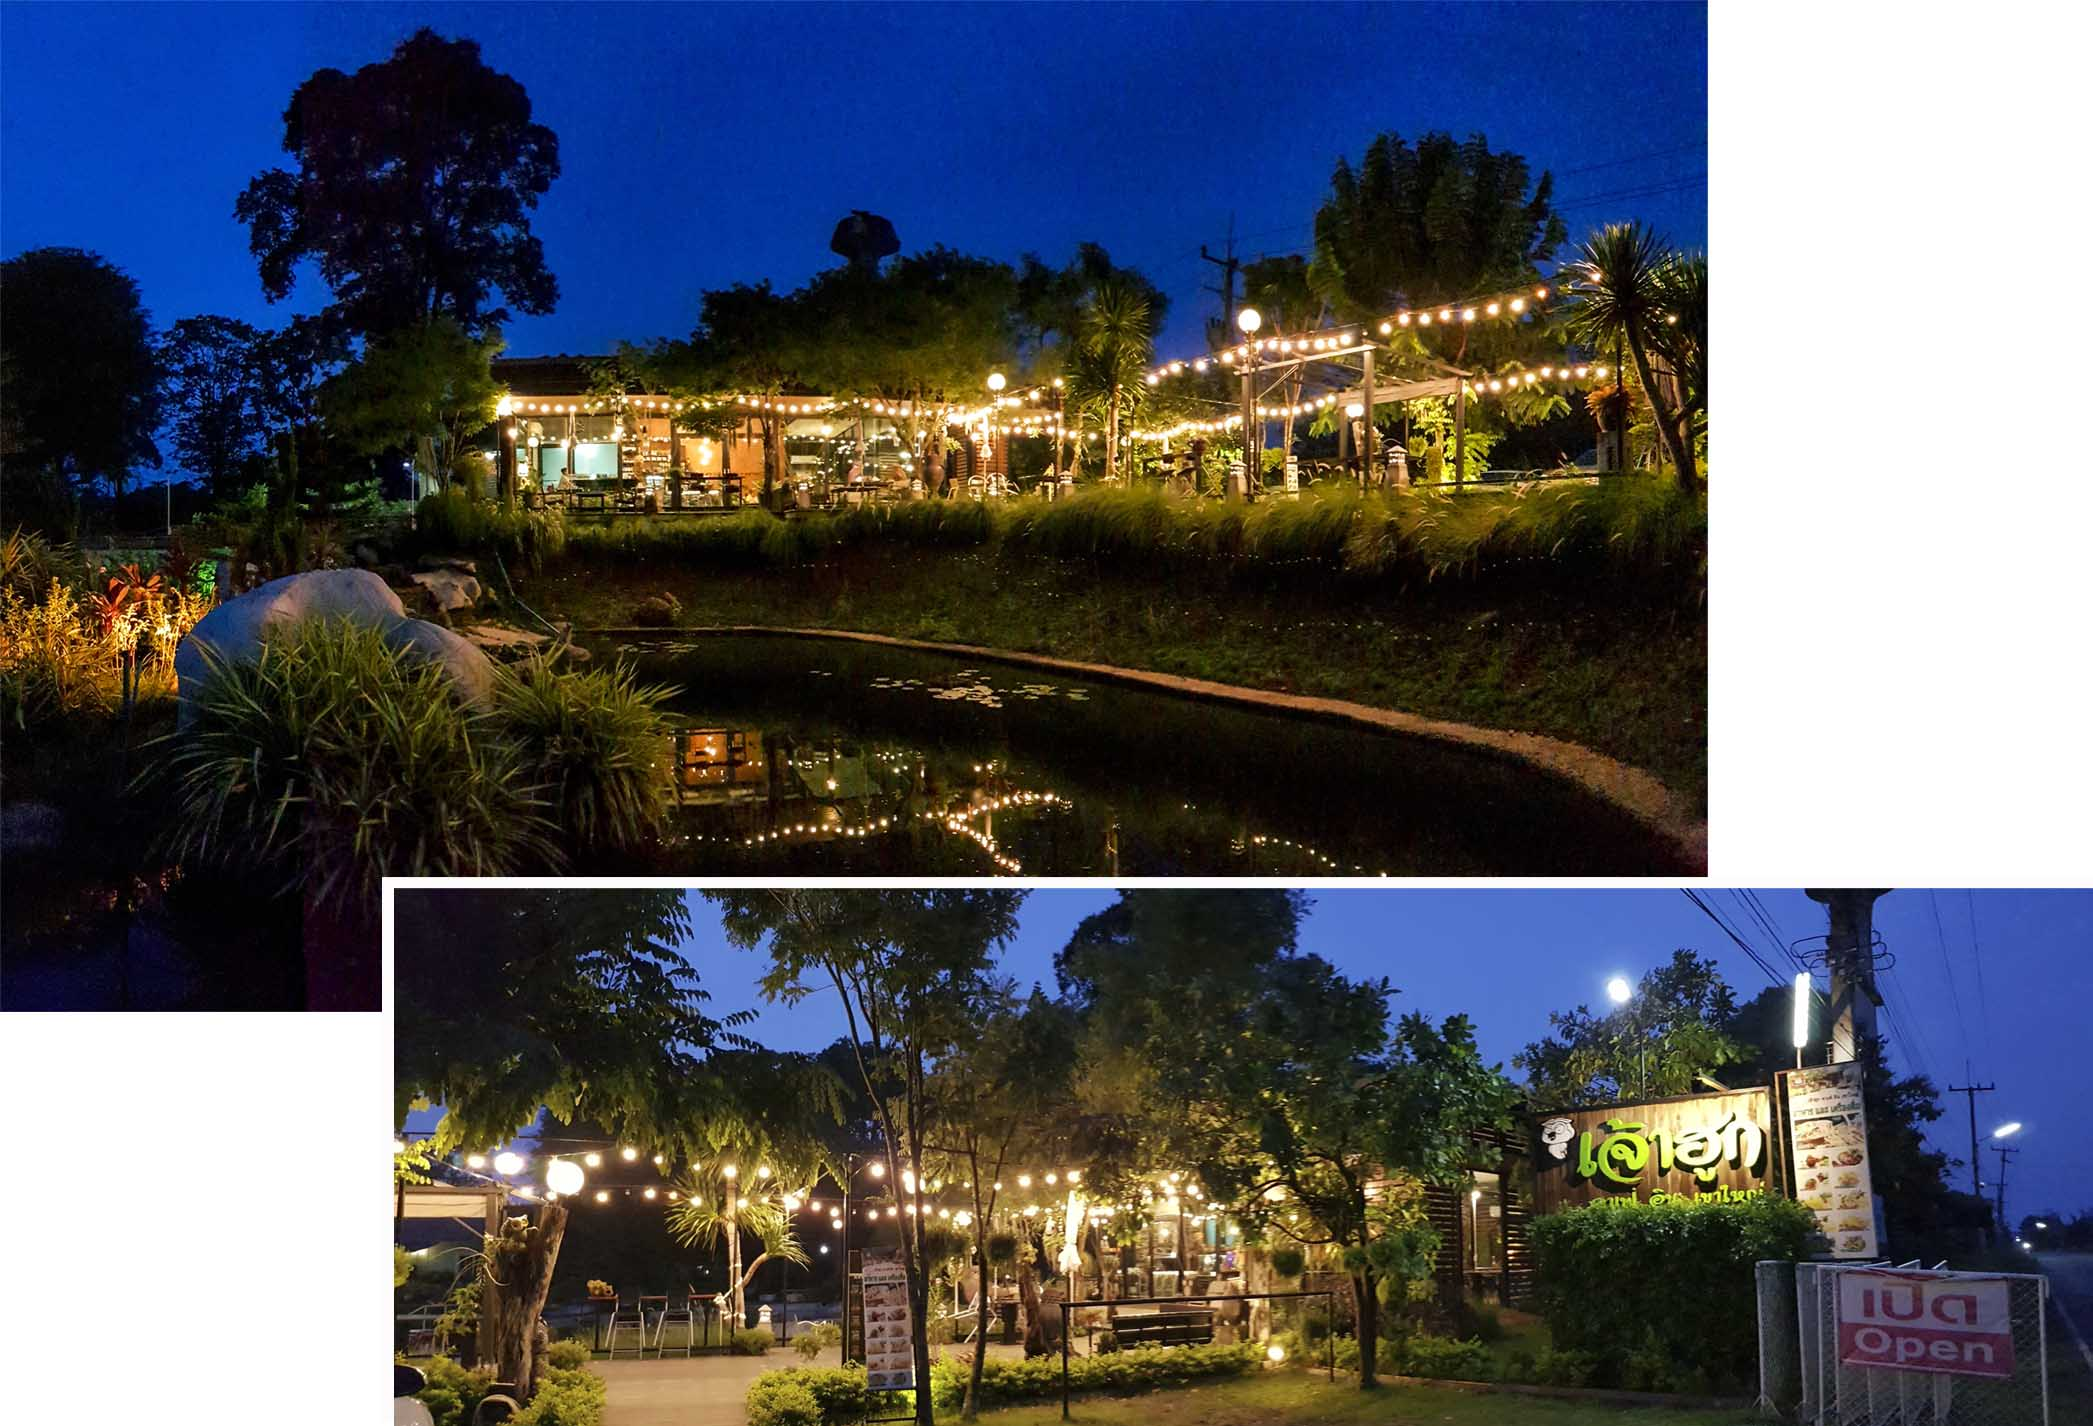 Jowhook Cafe in Khao Yai